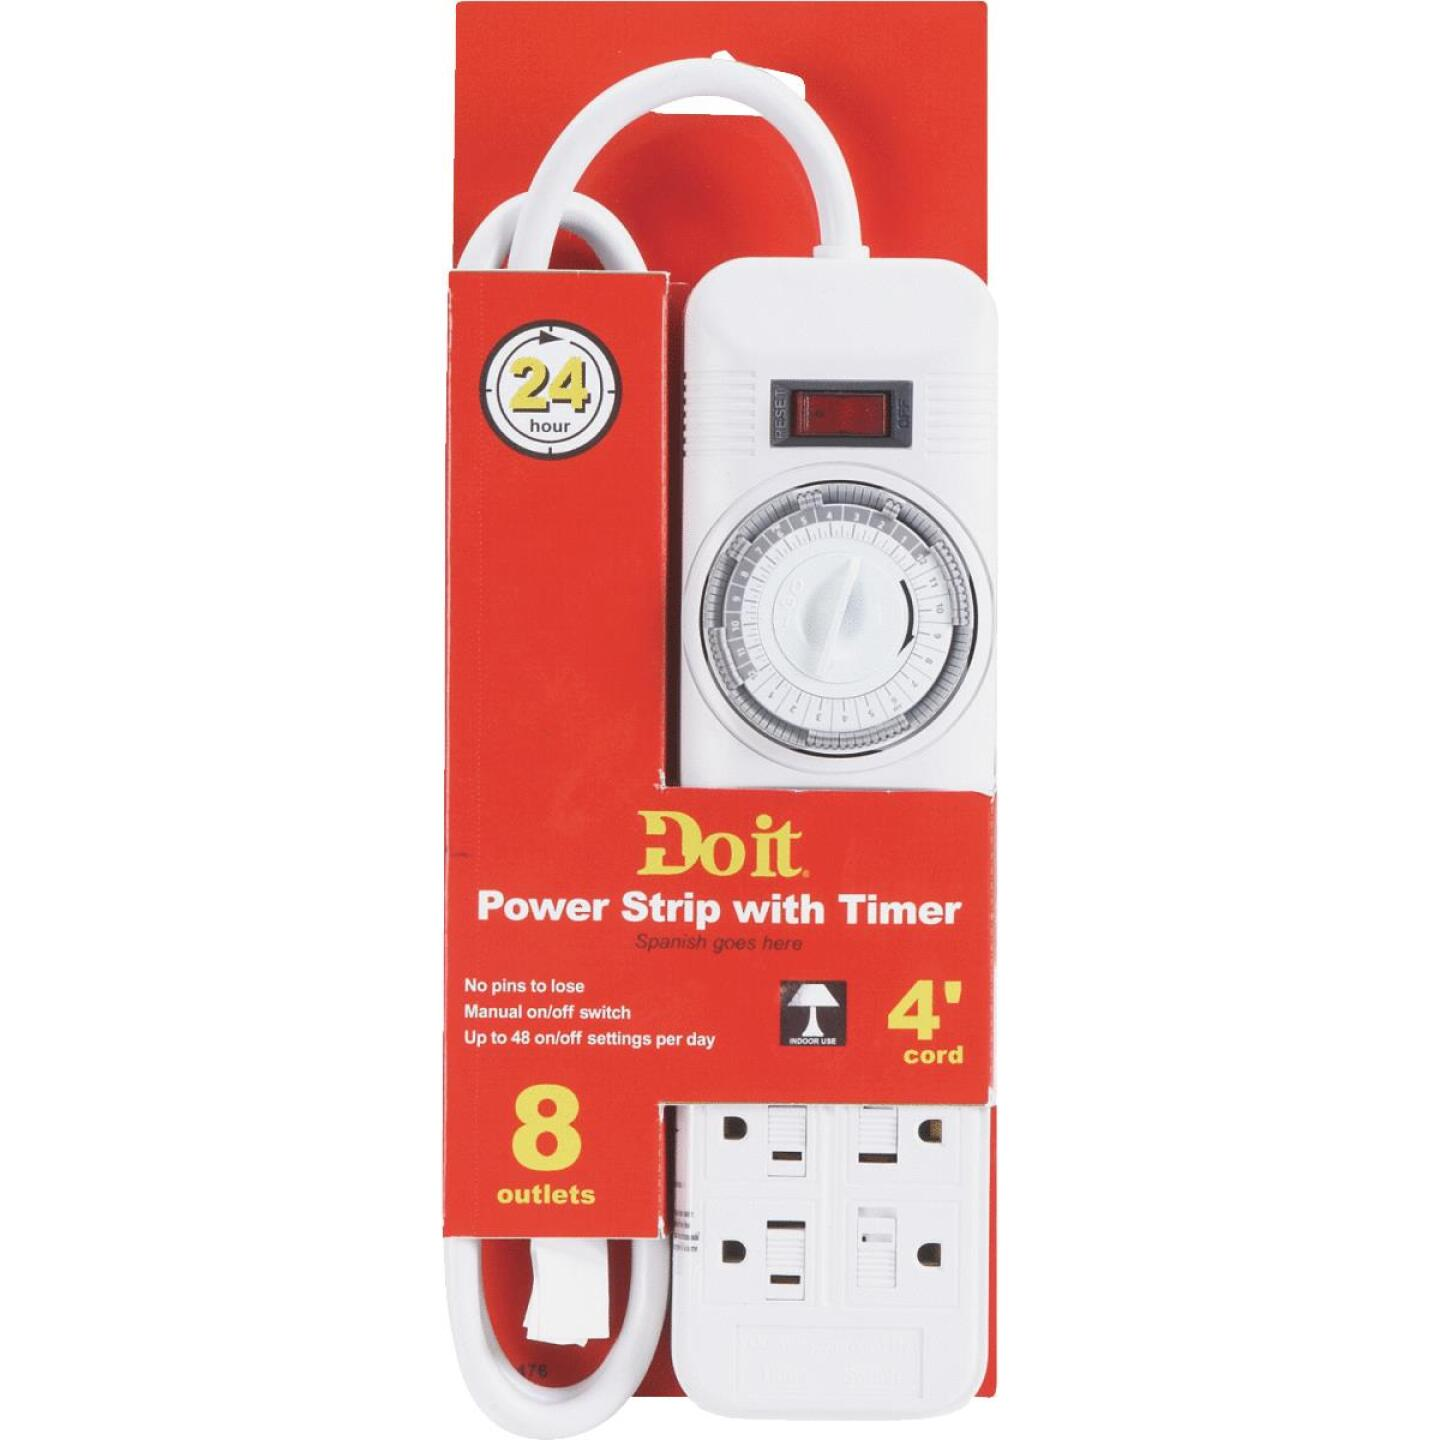 Do it 8-Outlet White Power Strip with Timer & 4 Ft. Cord Image 2